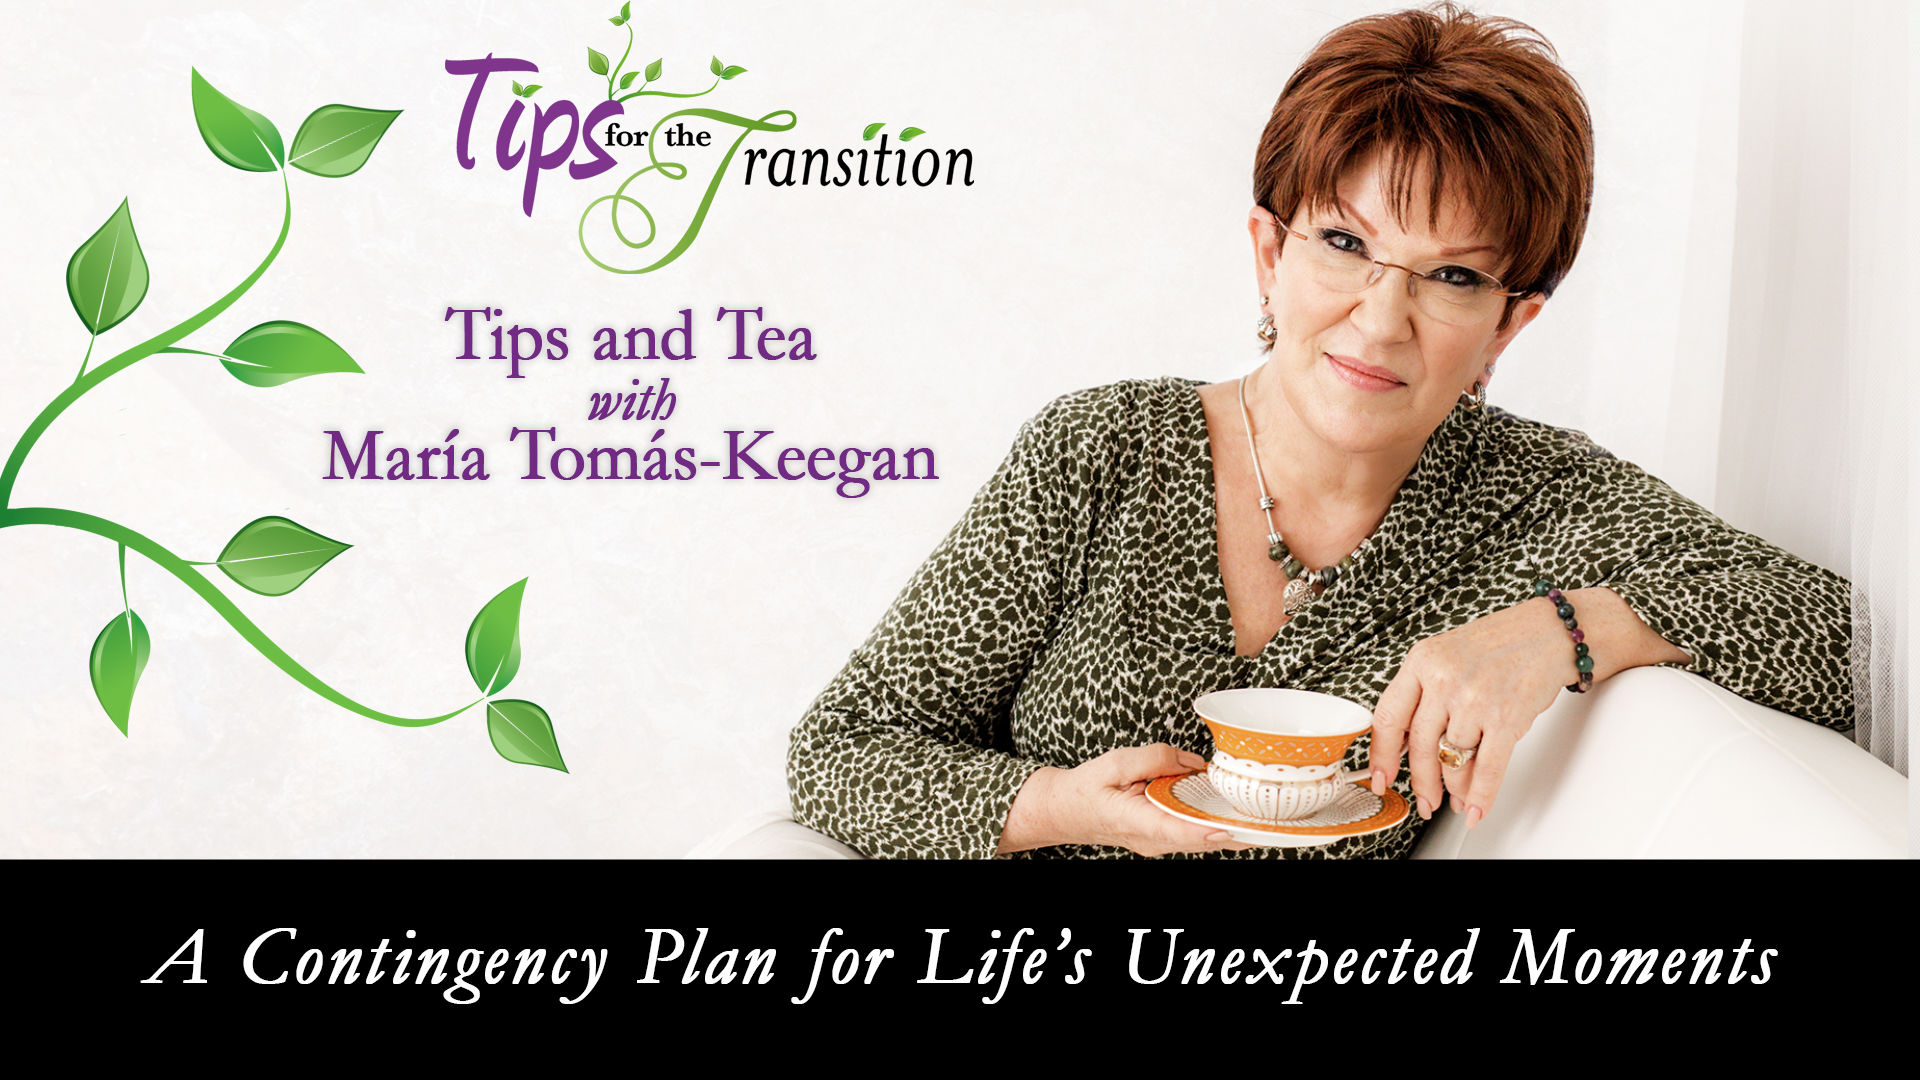 A Contingency Plan for Life's Unexpected Moments